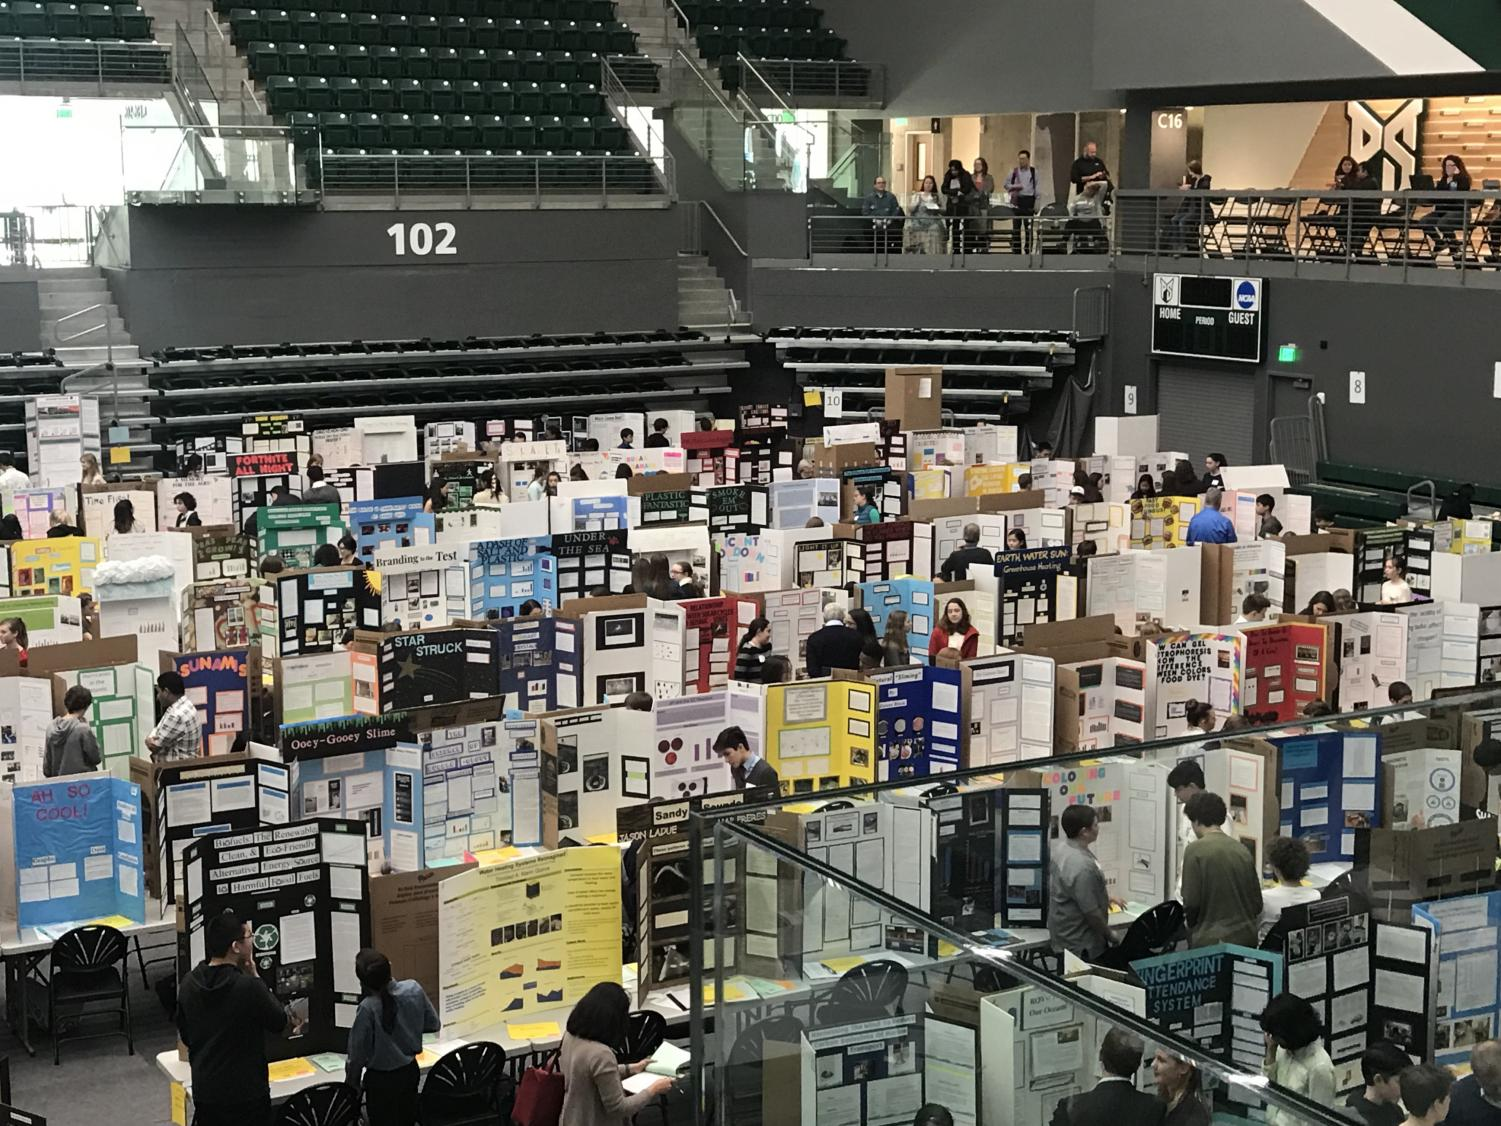 Students from schools throughout all of Oregon compete in ISEF at Viking Pavilion at Portland State University